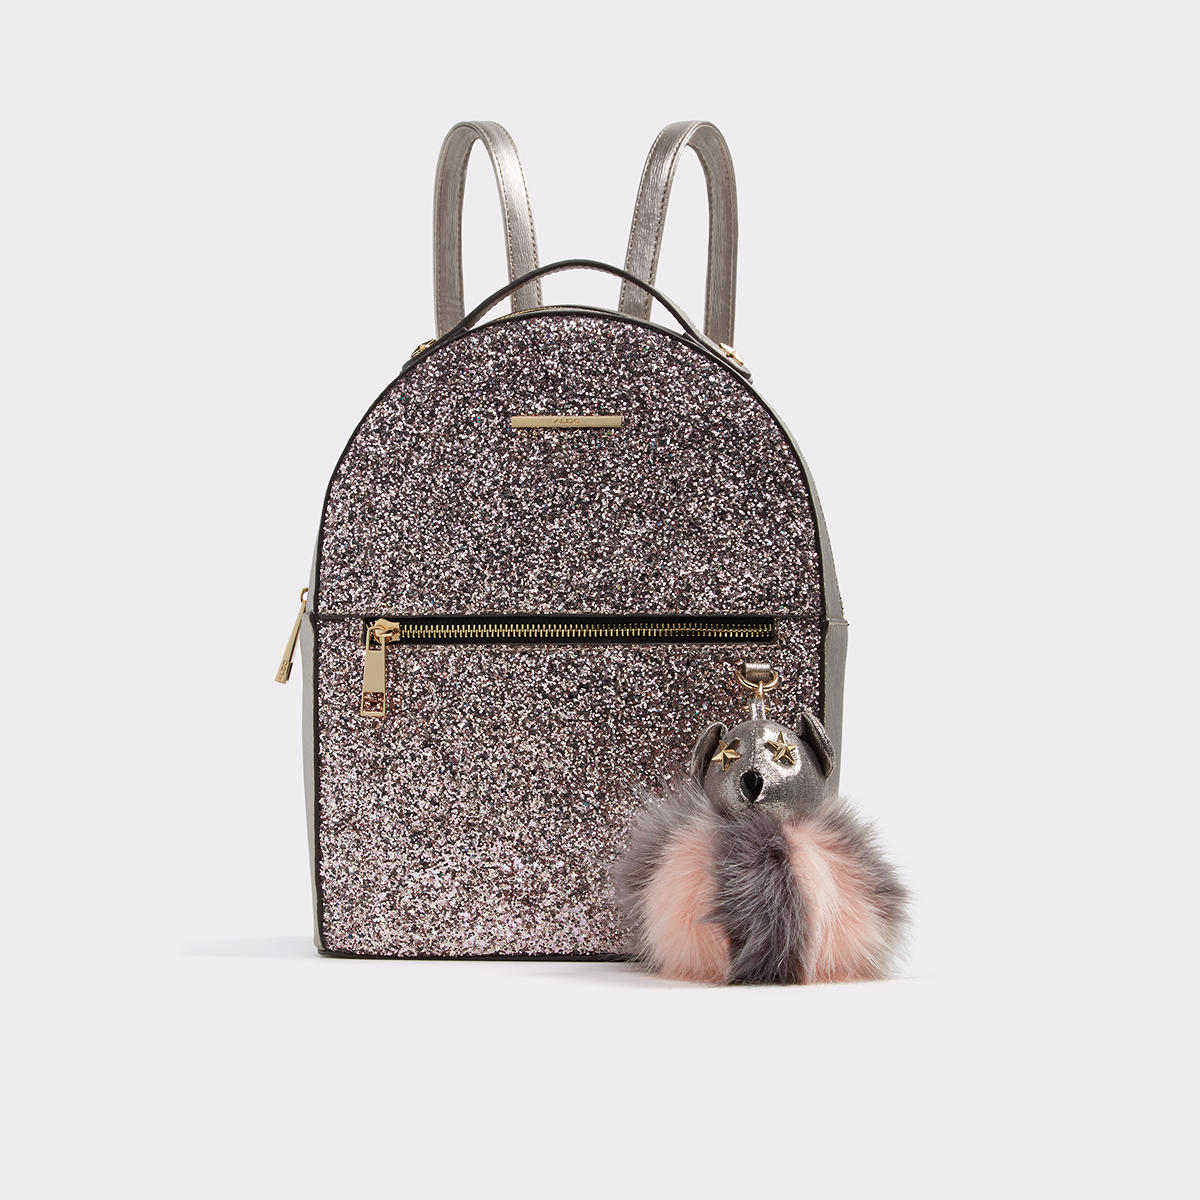 Adraolla Pink Misc. Women's Backpacks & duffles | ALDO US at Aldo Shoes in Victor, NY | Tuggl